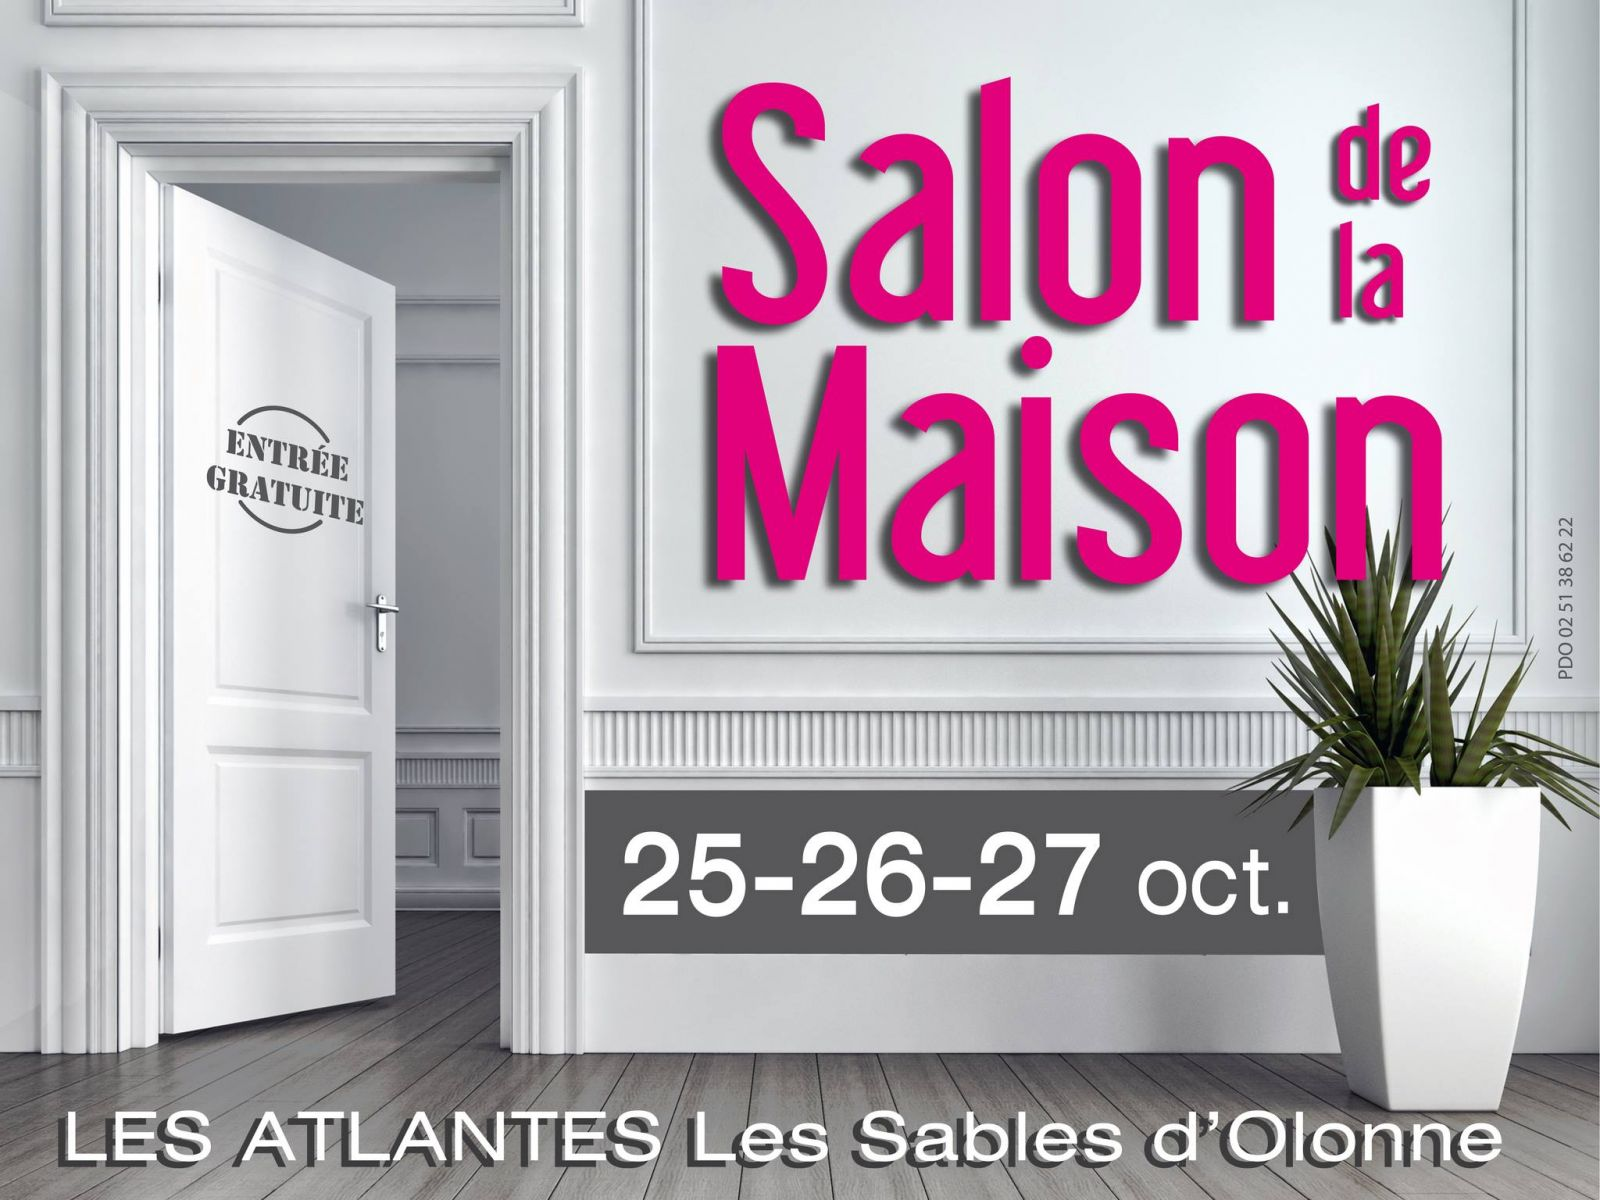 Salon de la maison aux sables d 39 olonne du 25 au 27 octobre for Salon de la photo